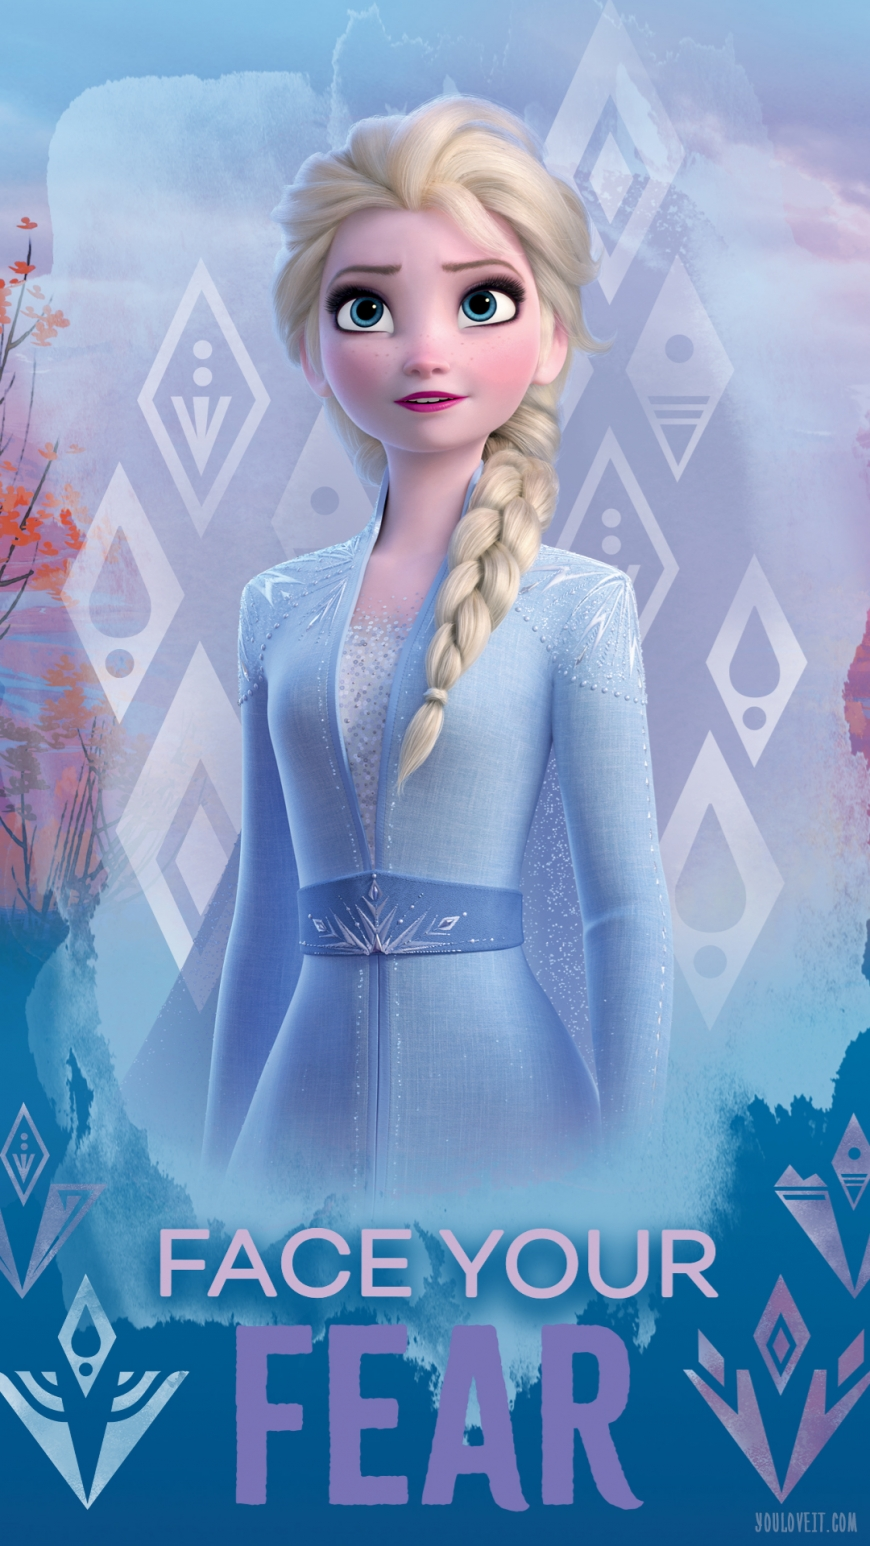 Frozen 2 phone image with Elsa